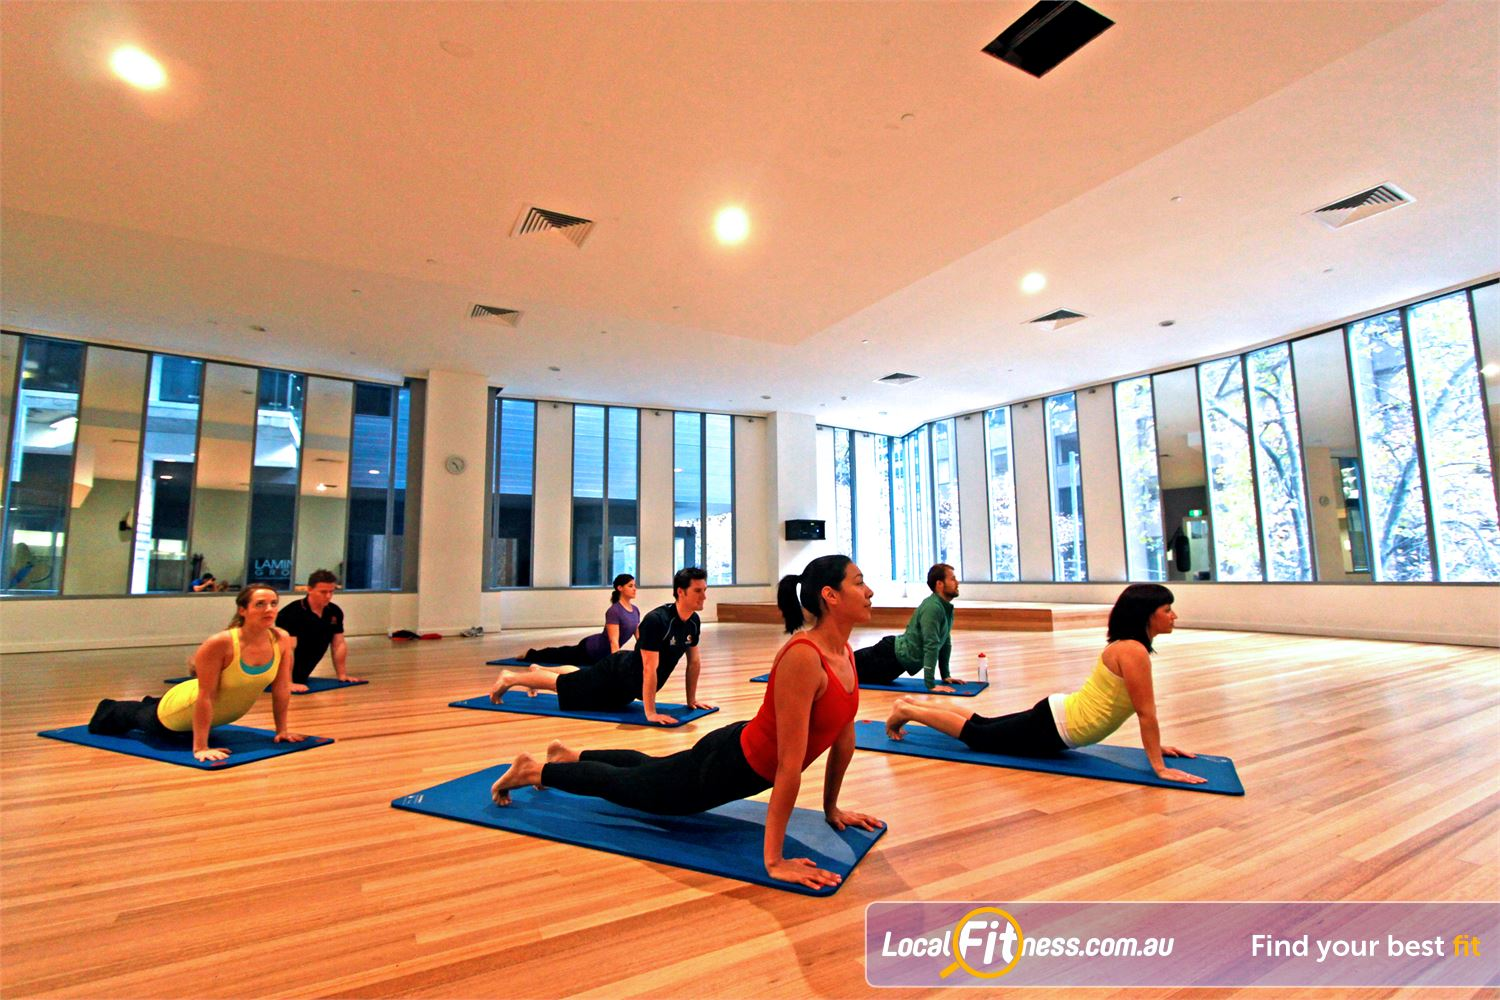 South Pacific Health Clubs Near Southbank Classes led by professional and experienced instructors.